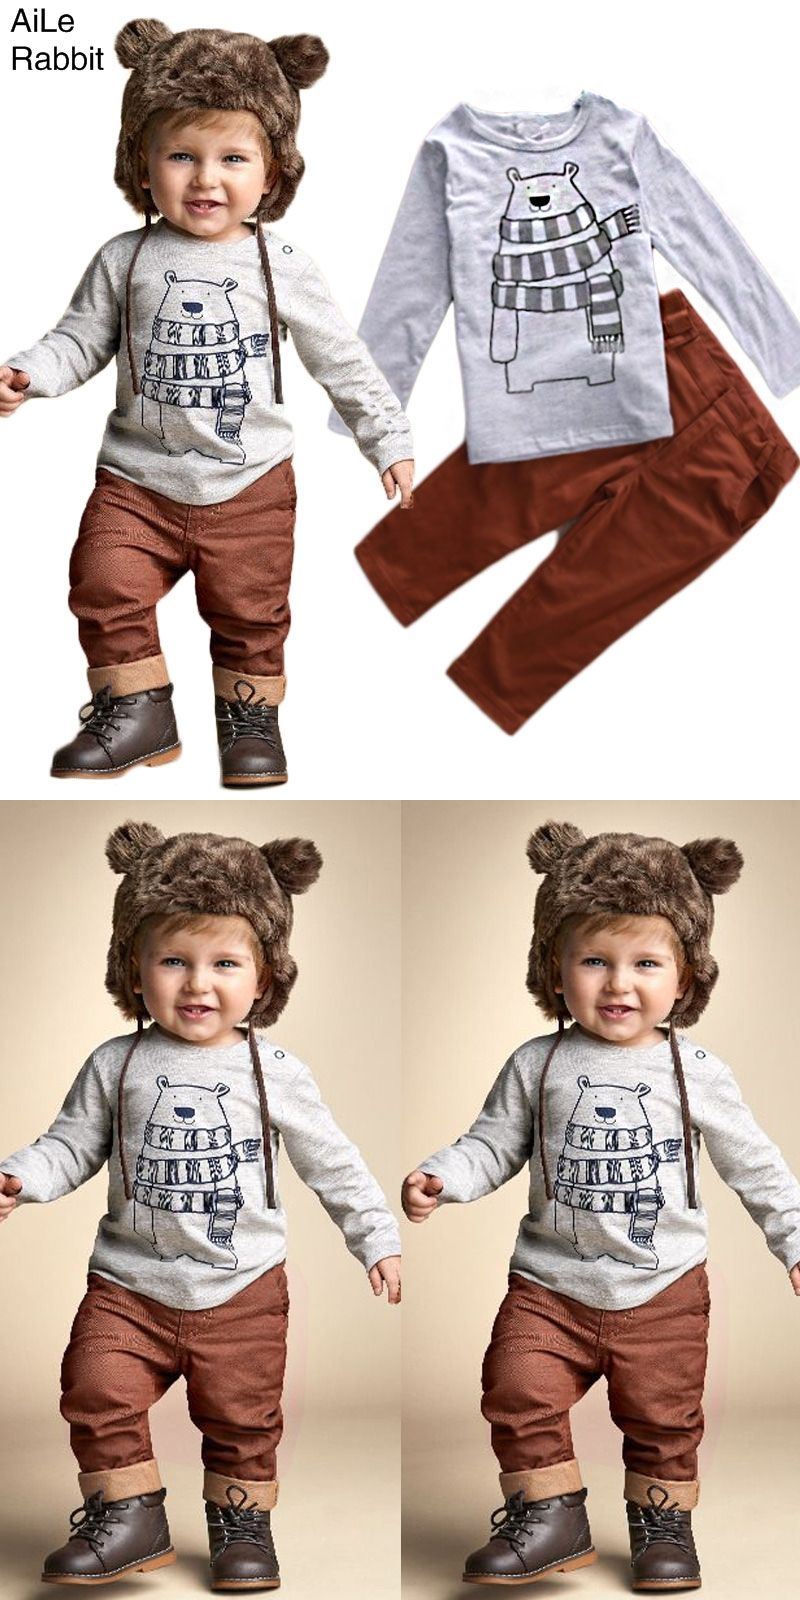 66977bc60139 Hot sale! 2016 Summer style Children clothing sets Baby boys girls t shirts+shorts+belt  3pcs pants sports suit kids clothes